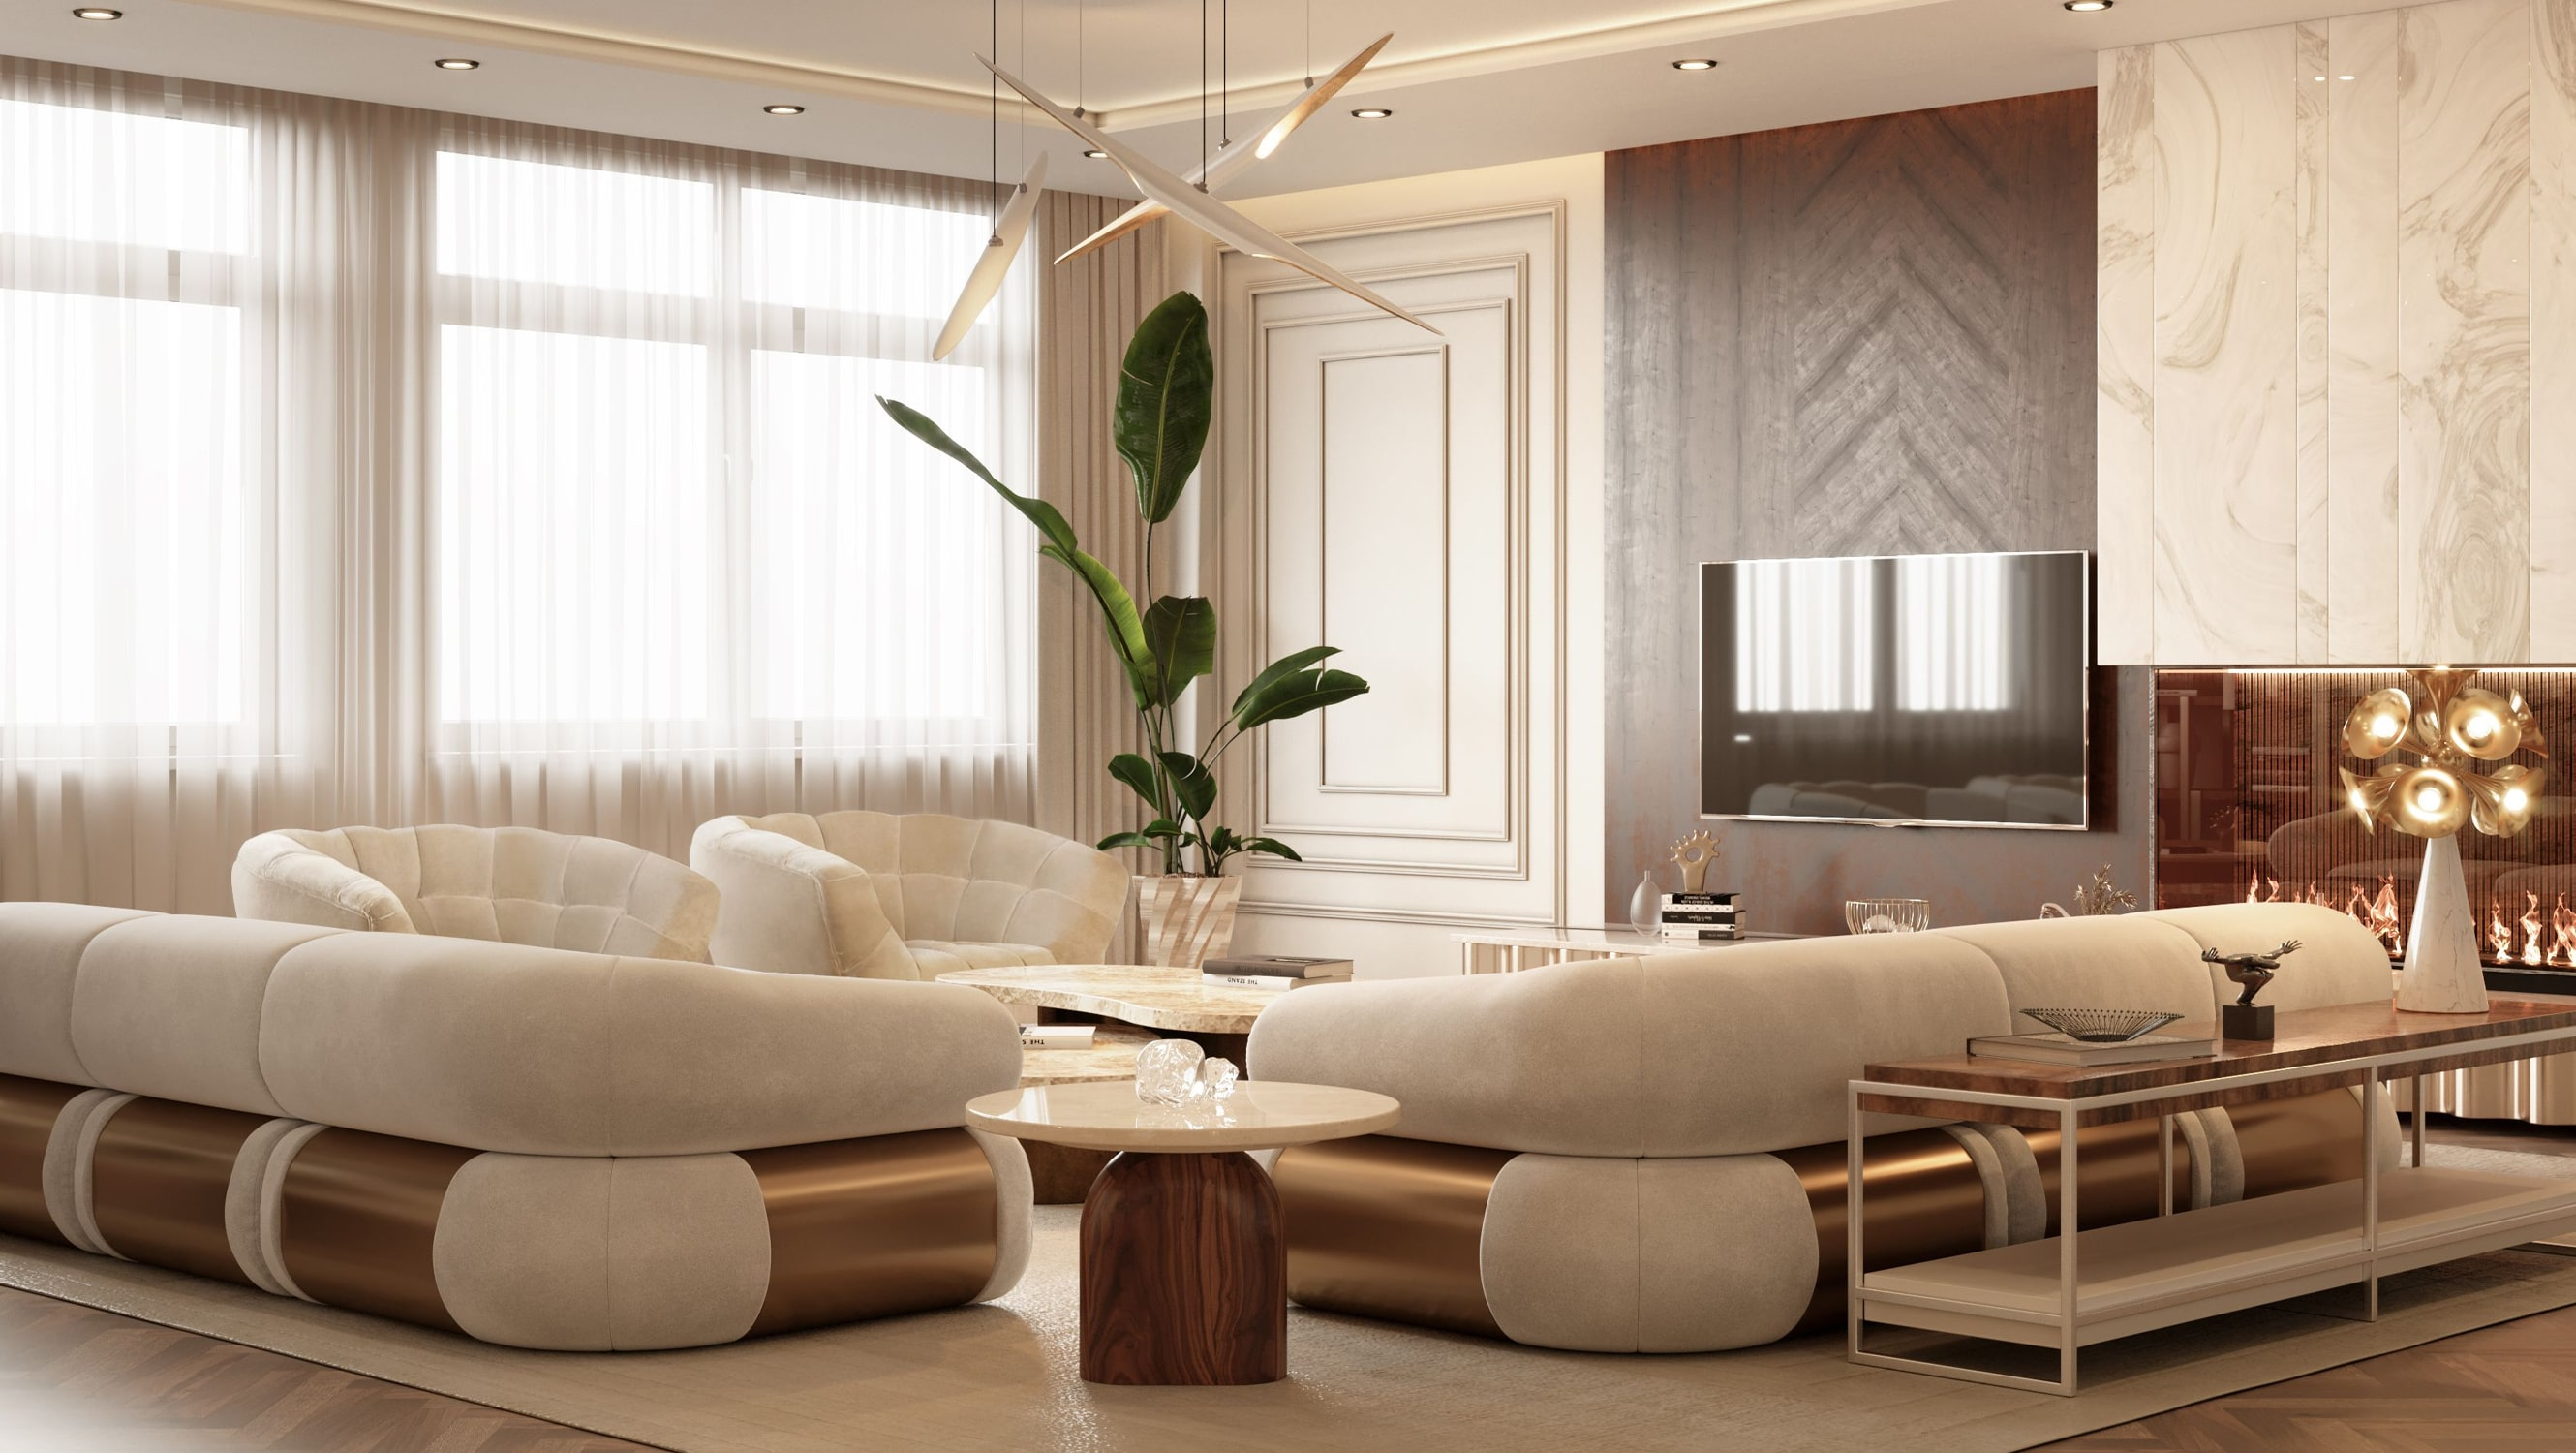 living room - AN EXCEPTIONAL CONTEMPORARY MODERN 16 MILLION PENTHOUSE IN MONACO